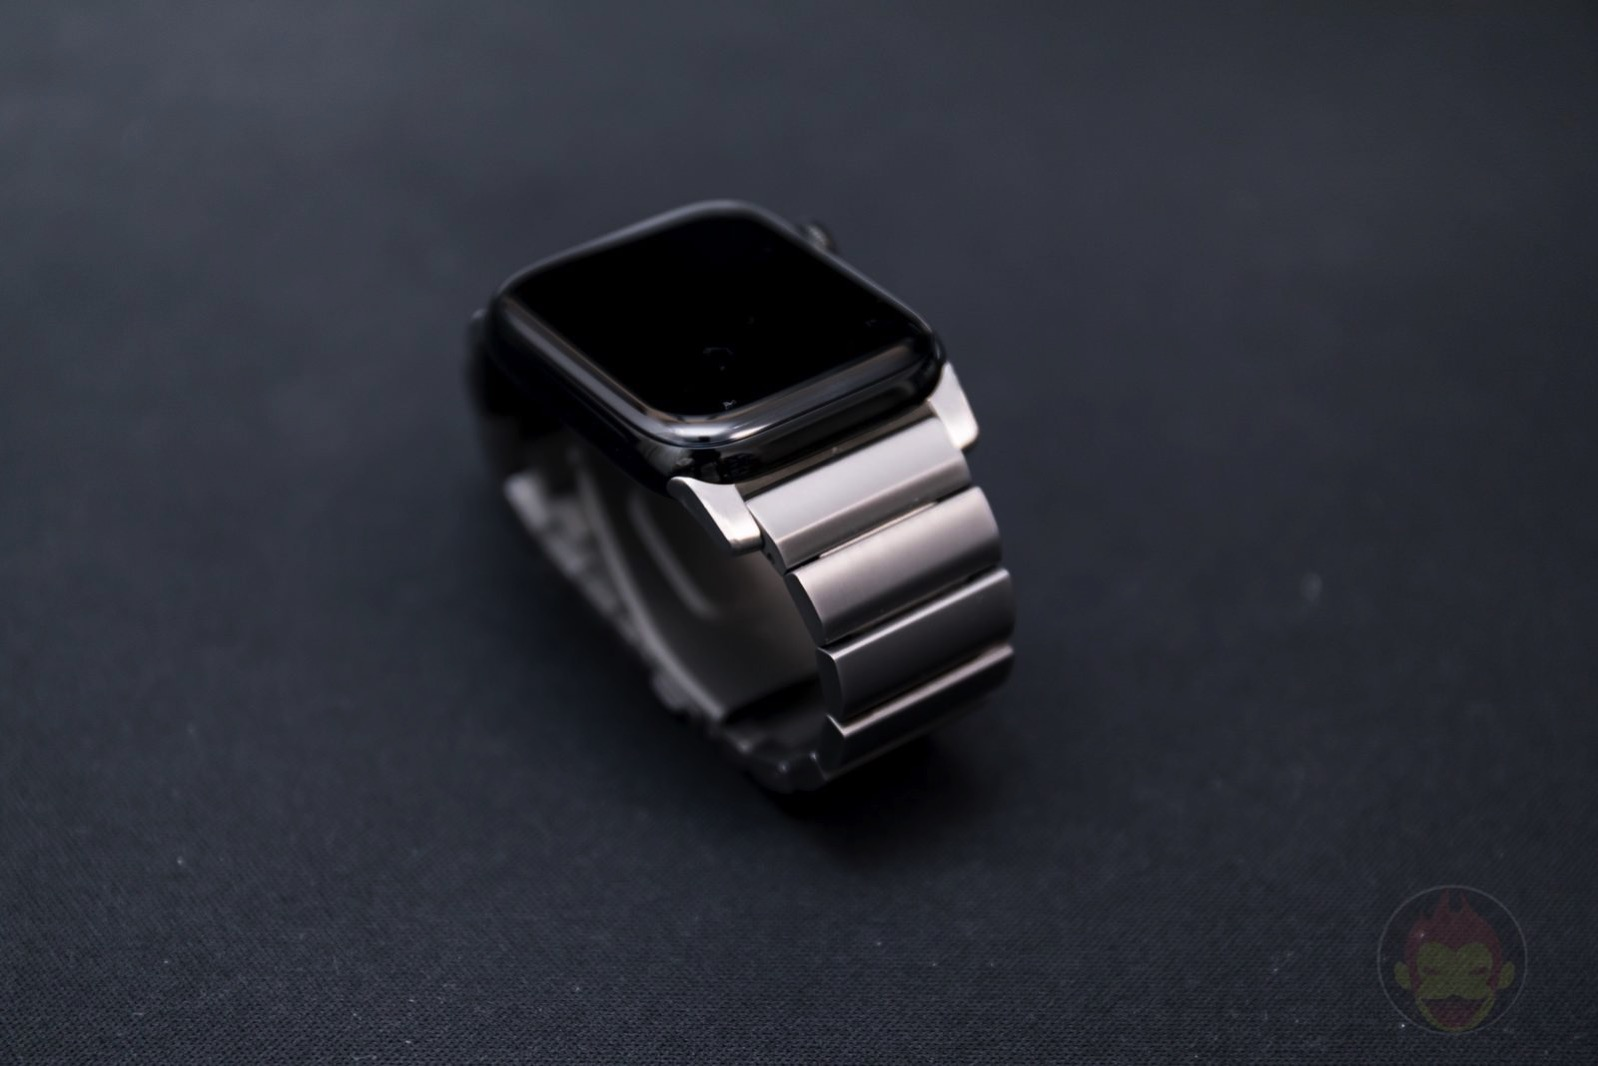 Apple-Watch-Nomad-Titanium-Band-Review-37.jpg